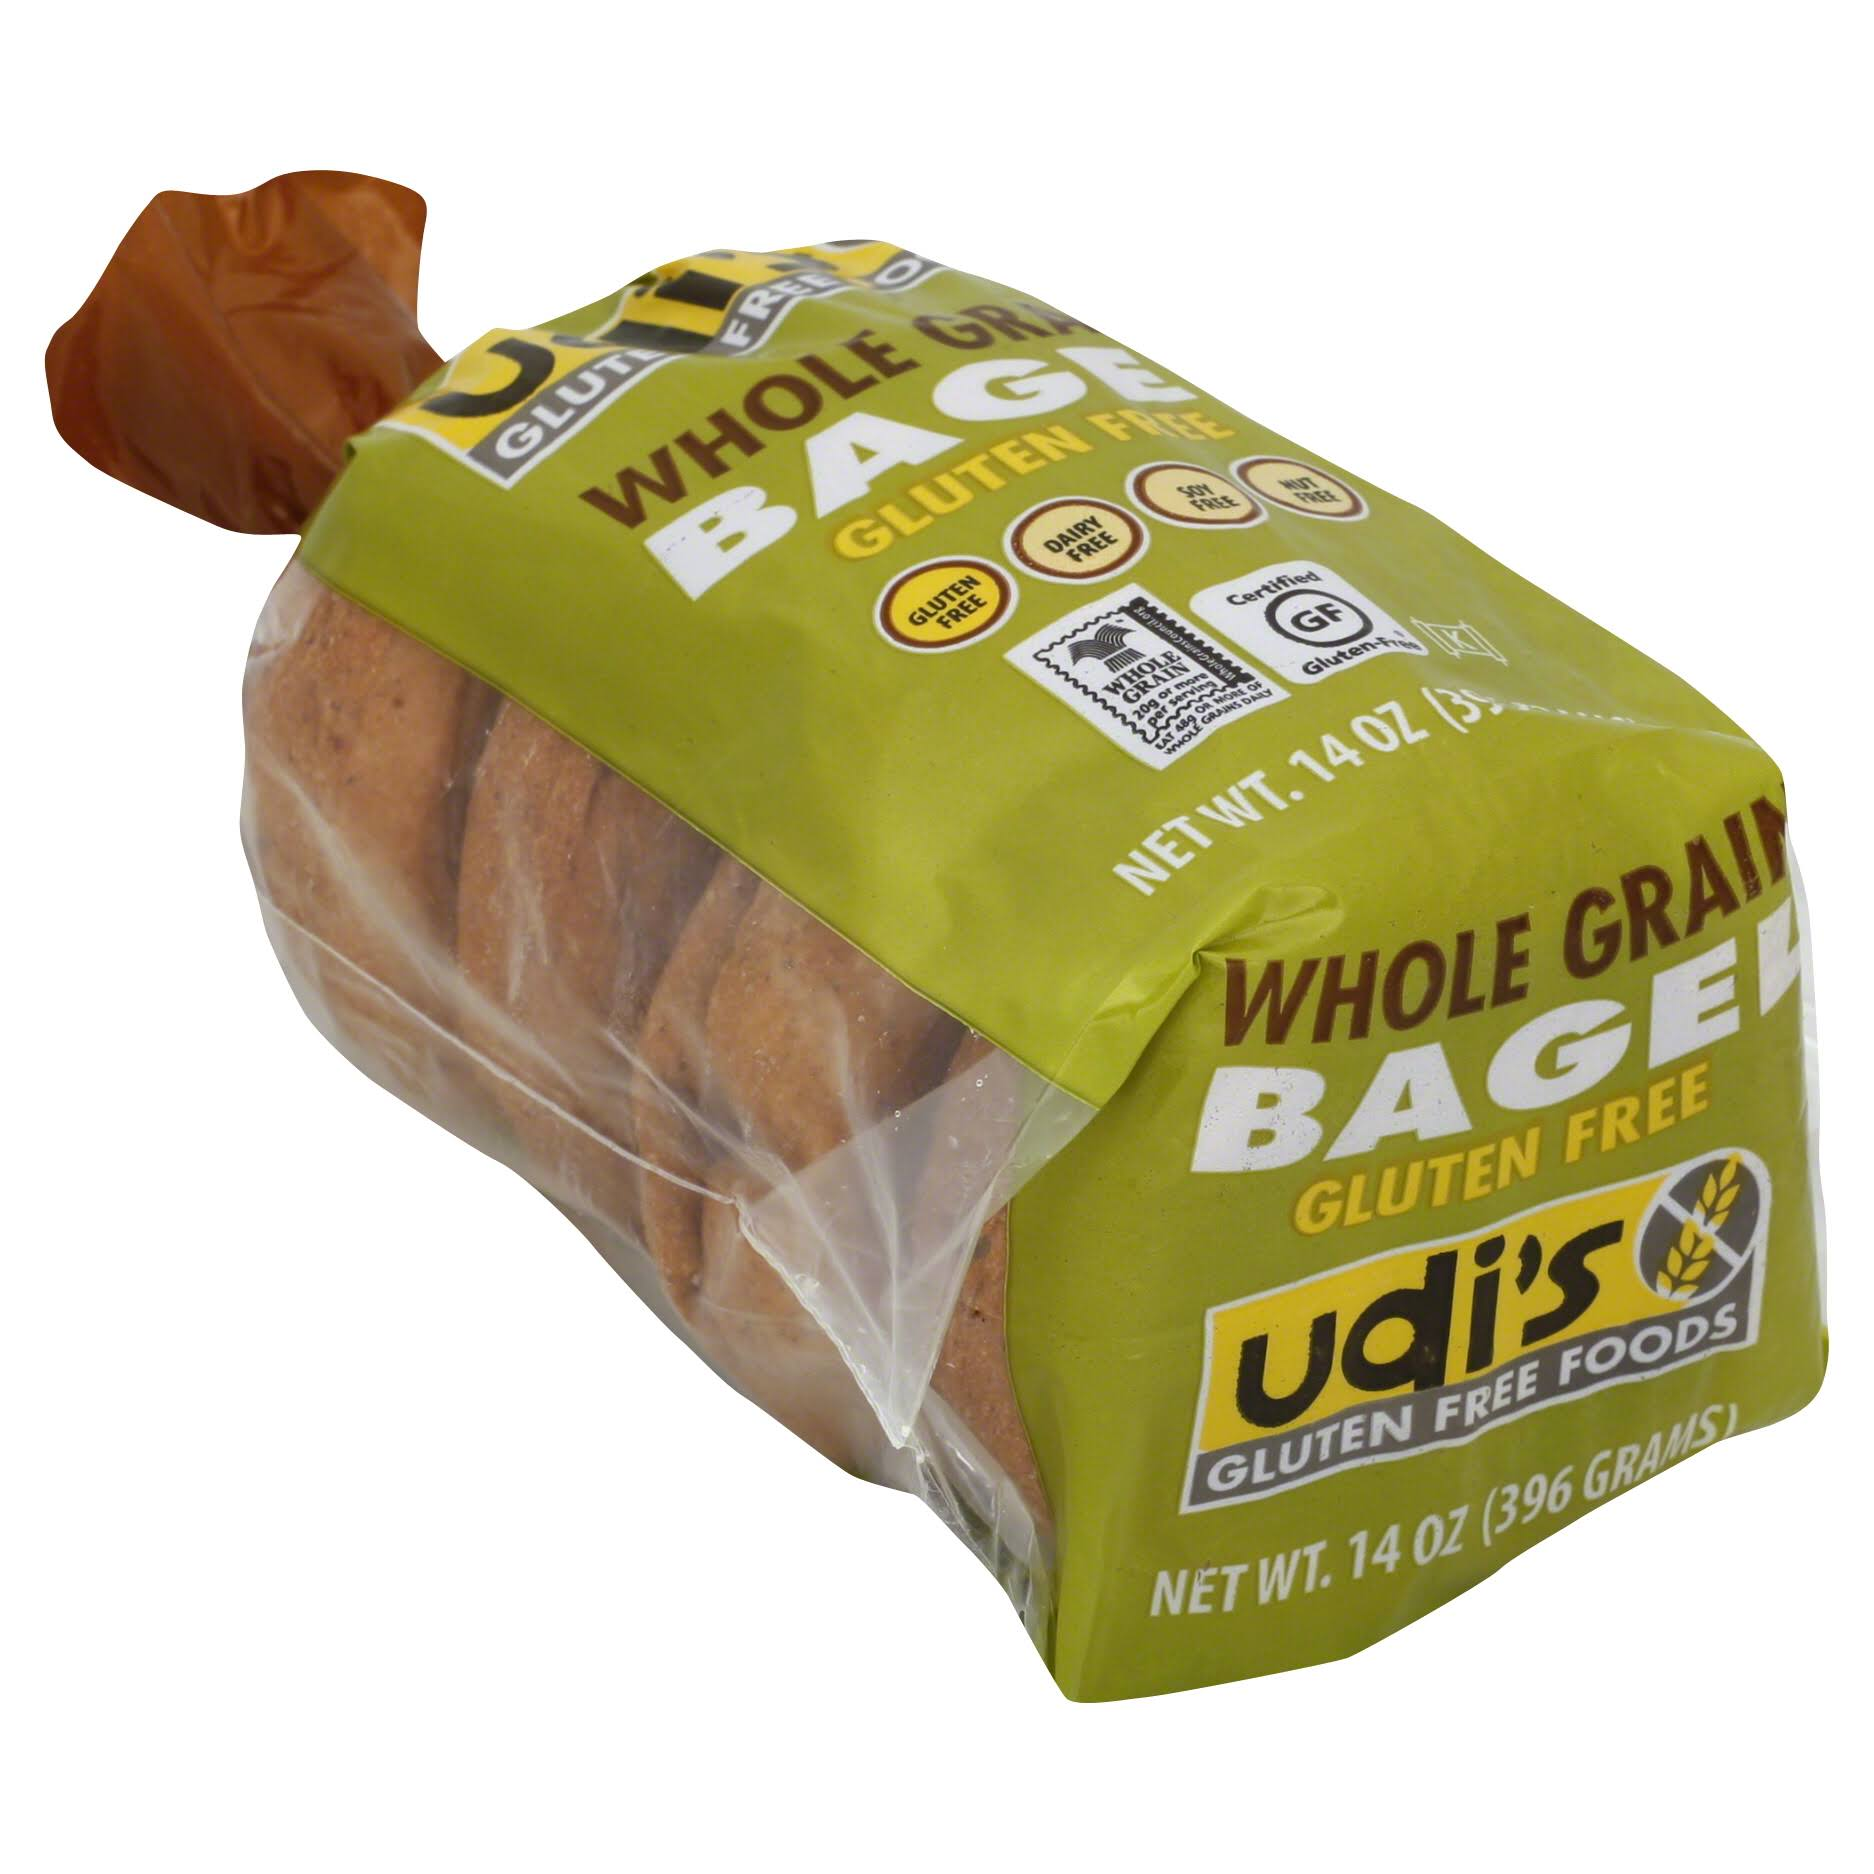 Udi´s Gluten Free Whole Grain Bagels - 4 Pack